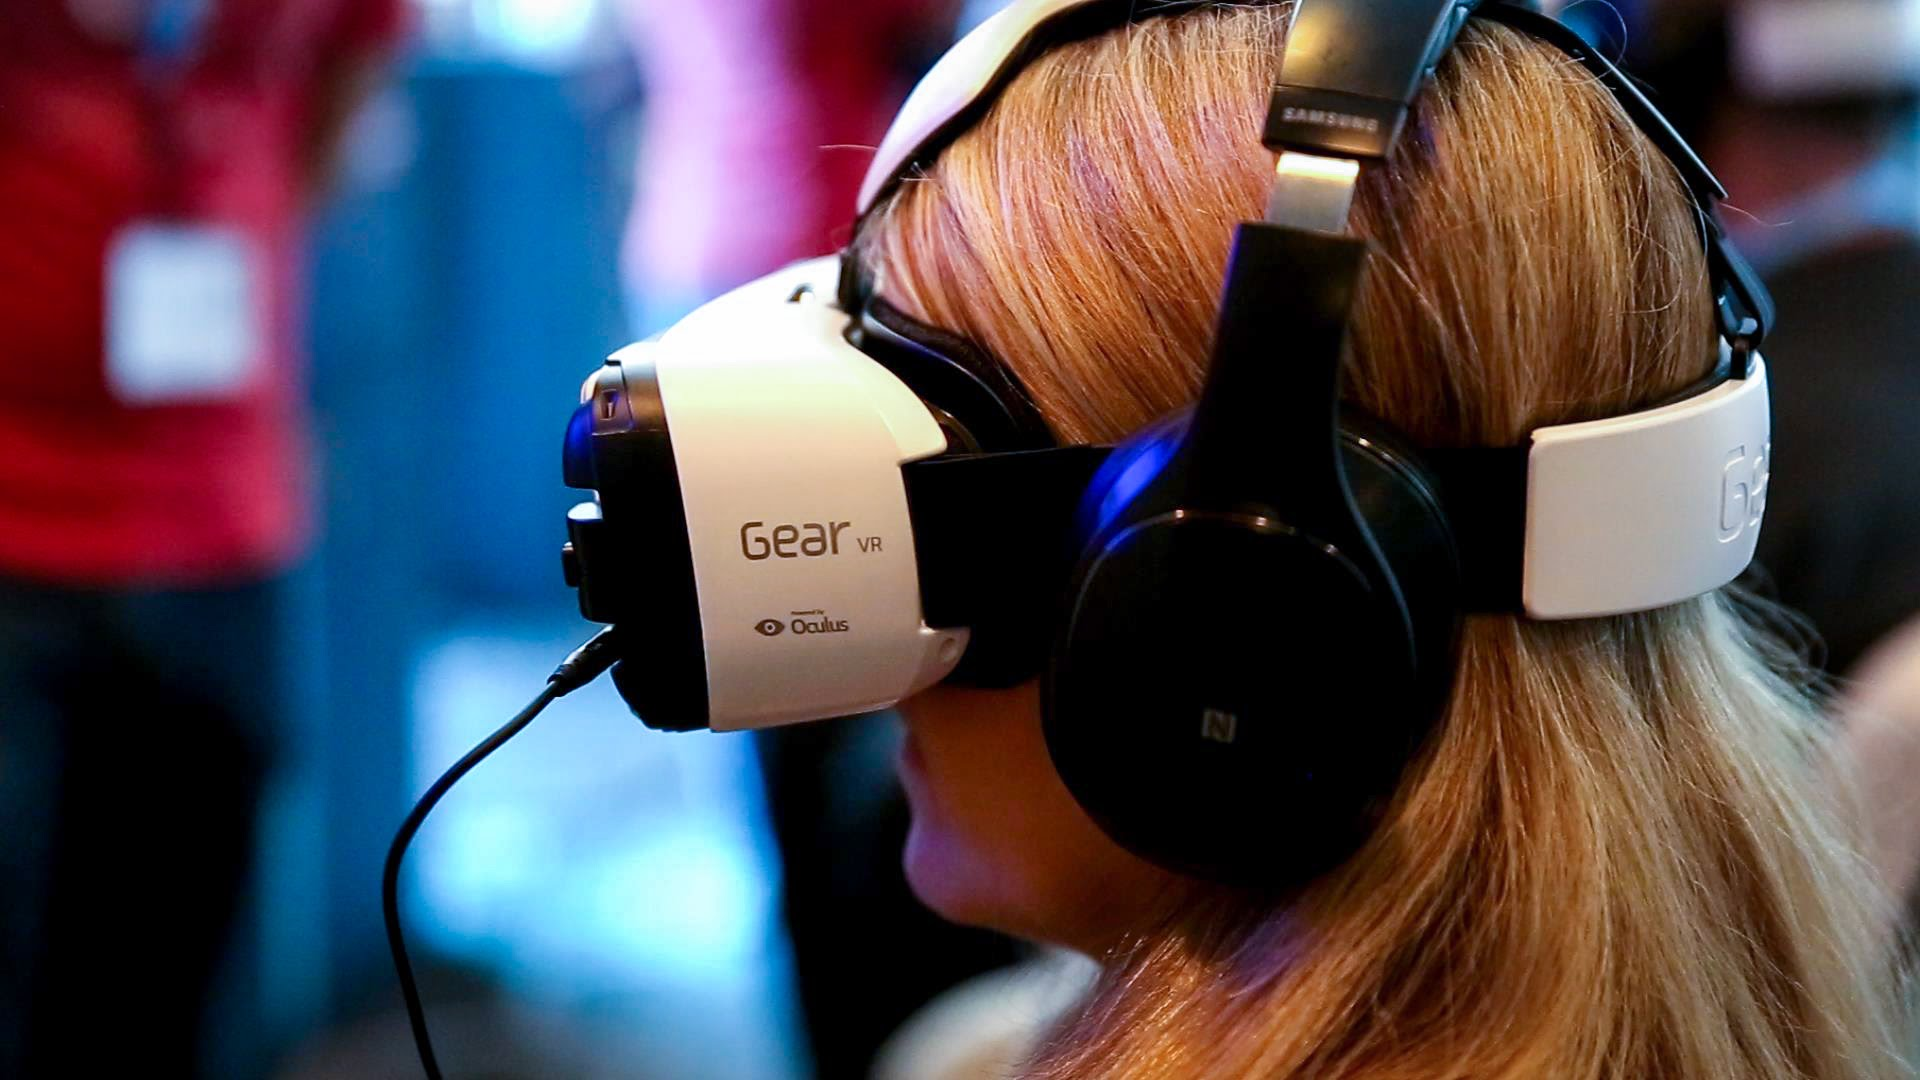 Oculus announced today some changes that it will be making to its Gear VR system. Photo credit: Tested